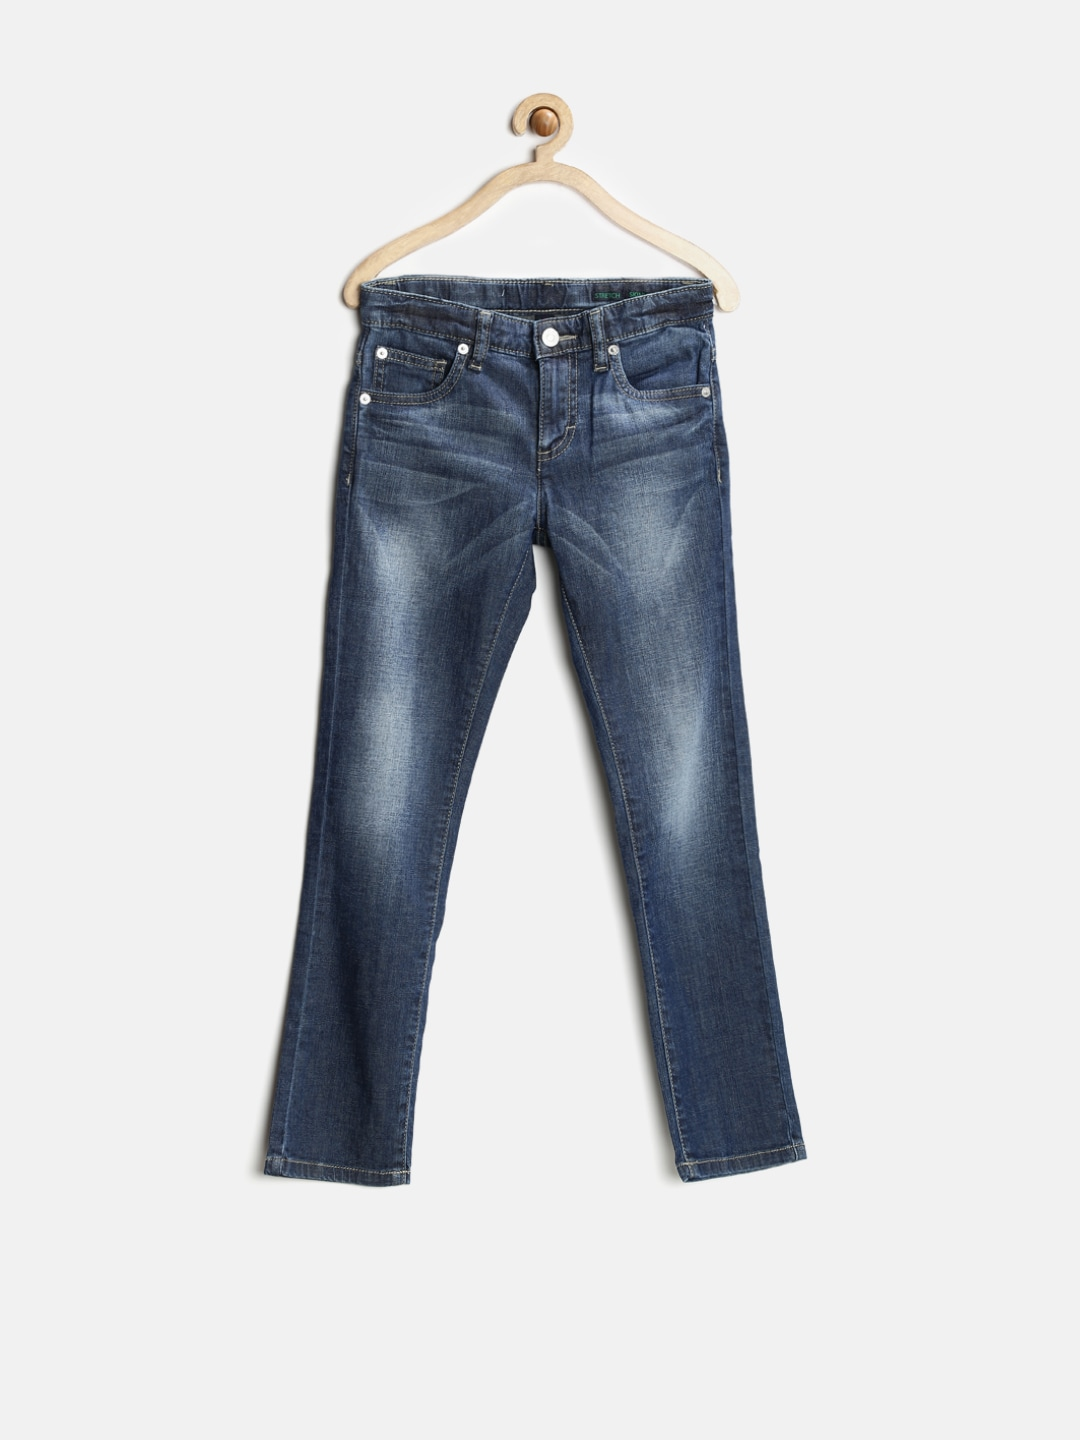 United Colors of Benetton Boys Blue Skinny Stretch Jeans